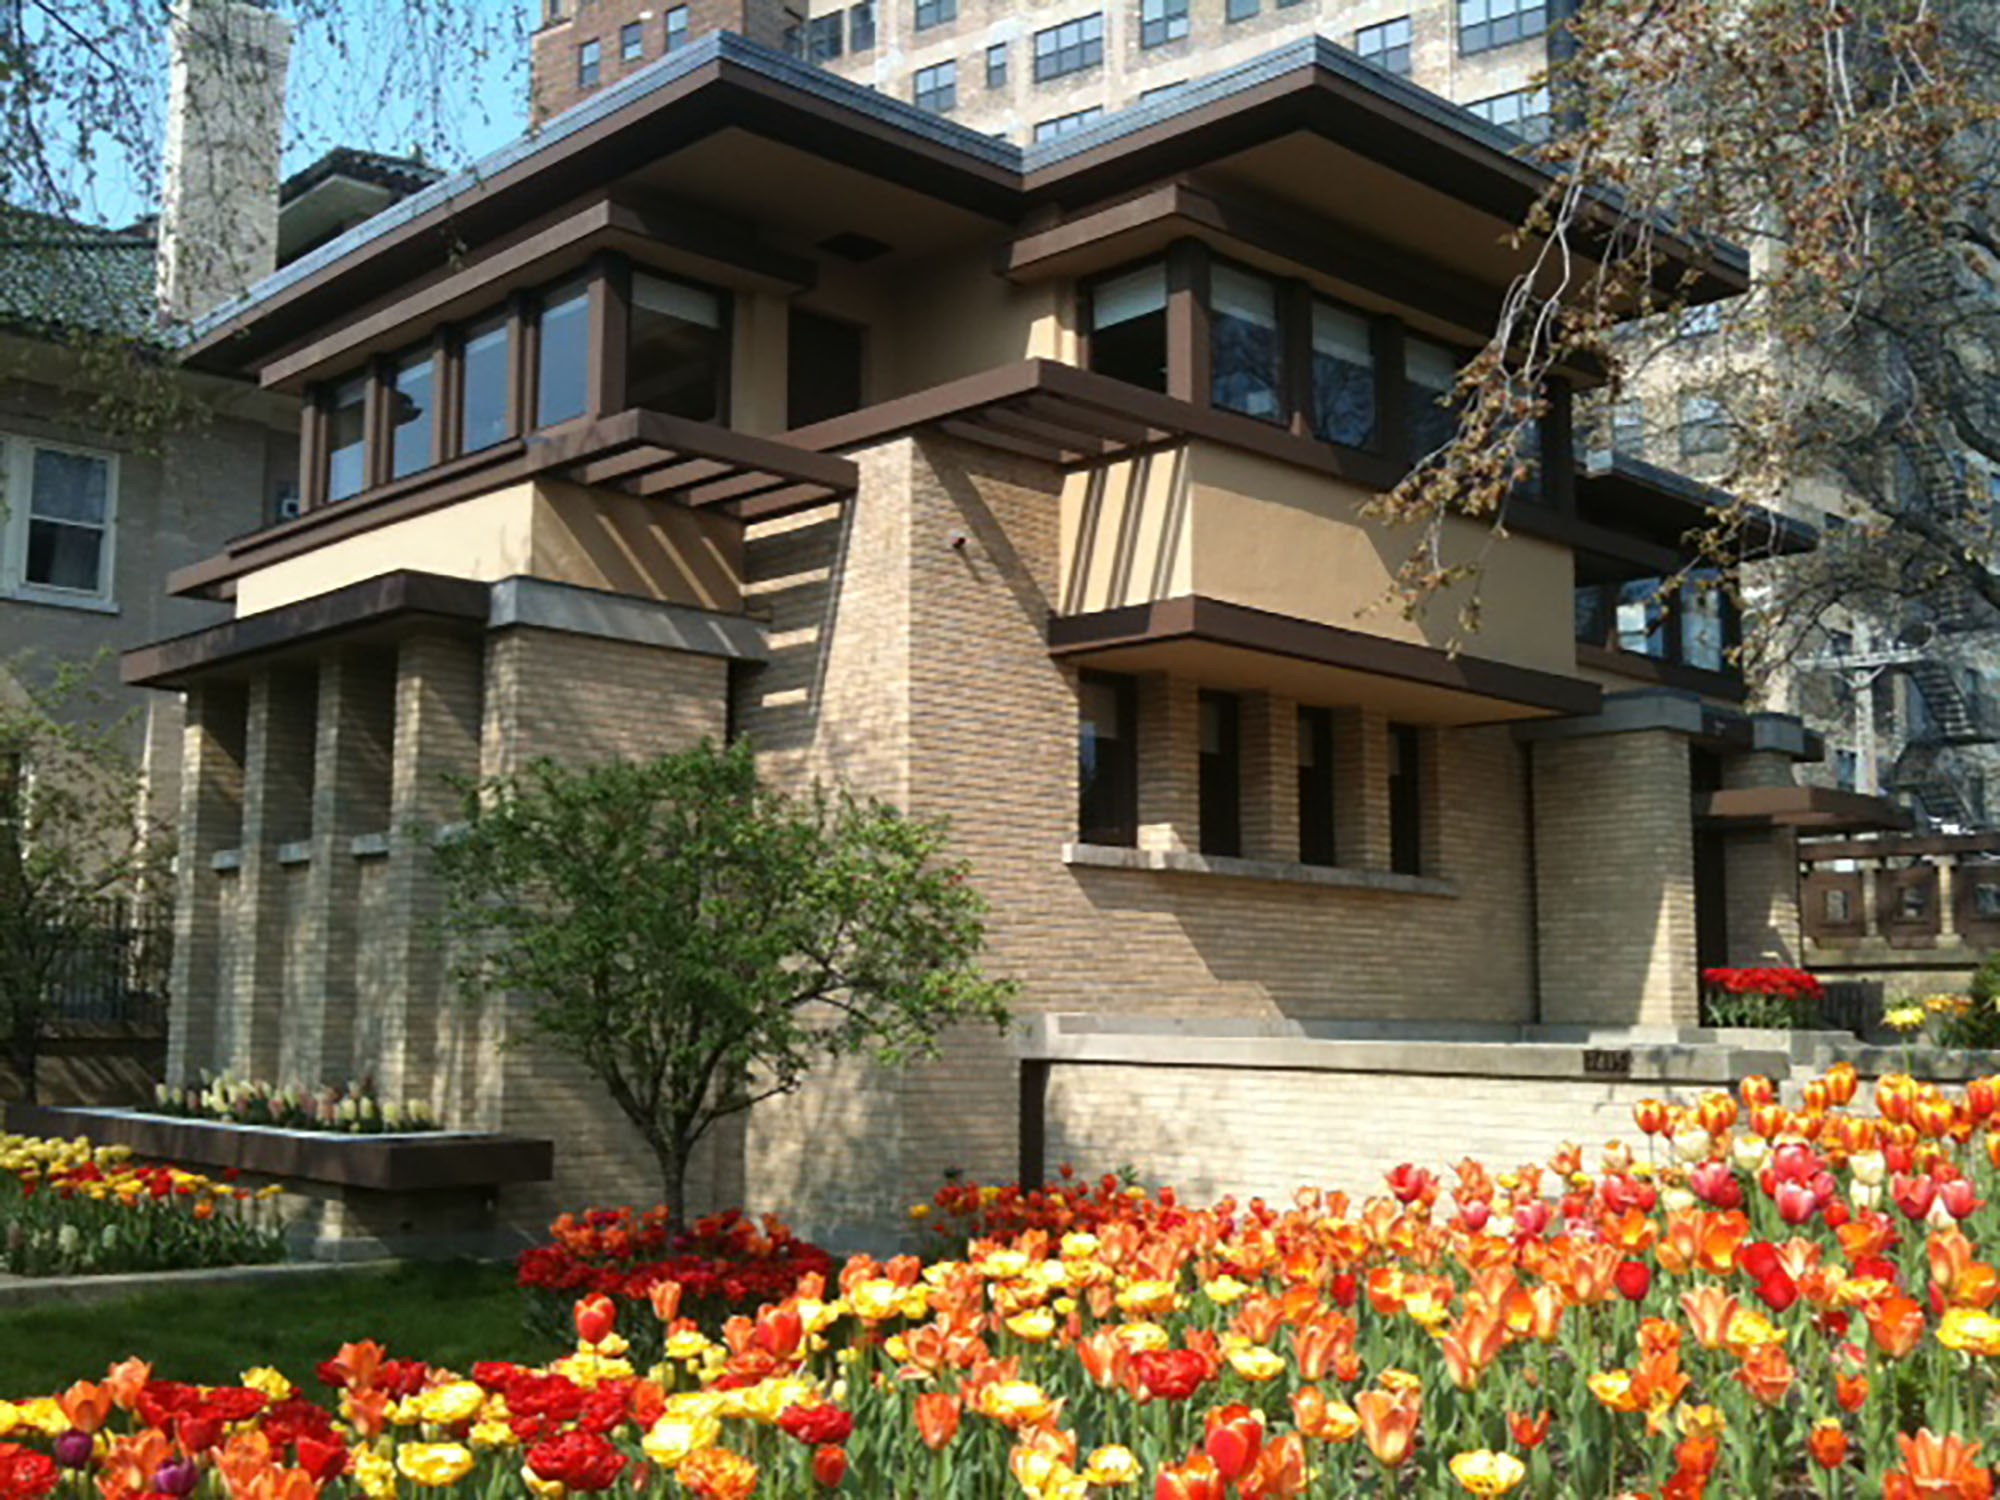 5 things you didn t know about frank lloyd wright - Frank lloyd wright architecture ...